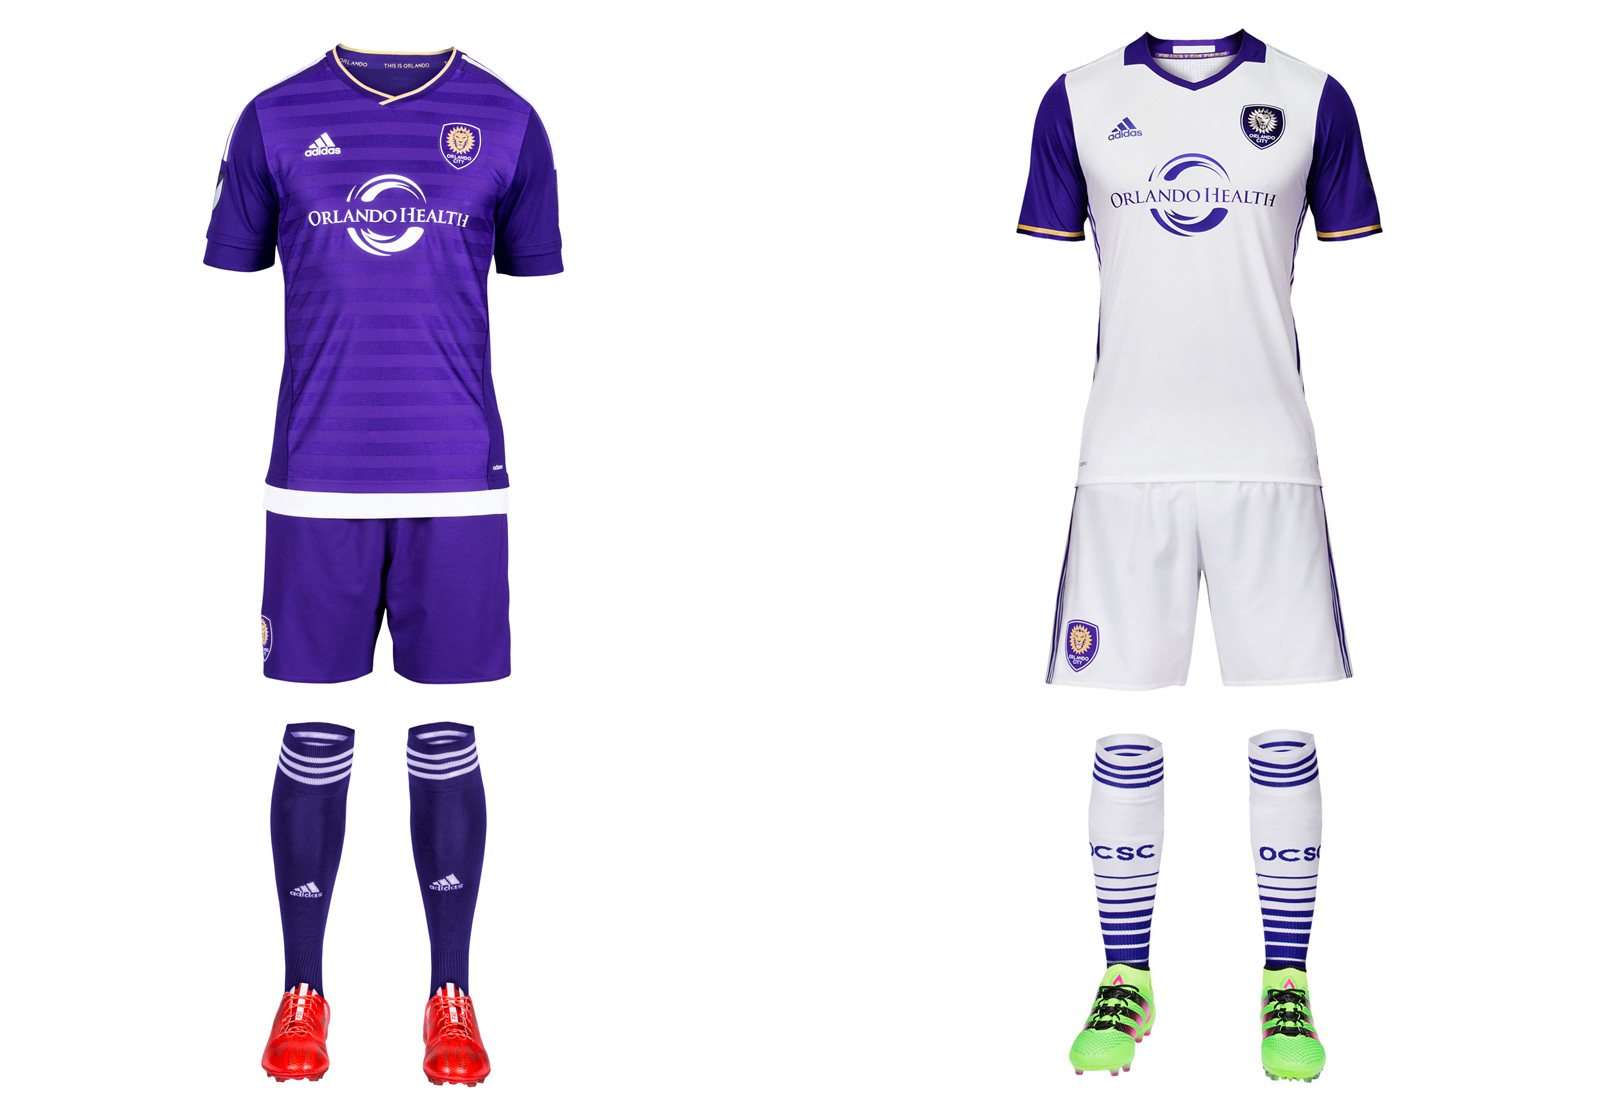 Orlando City SC's 2016 MLS uniforms